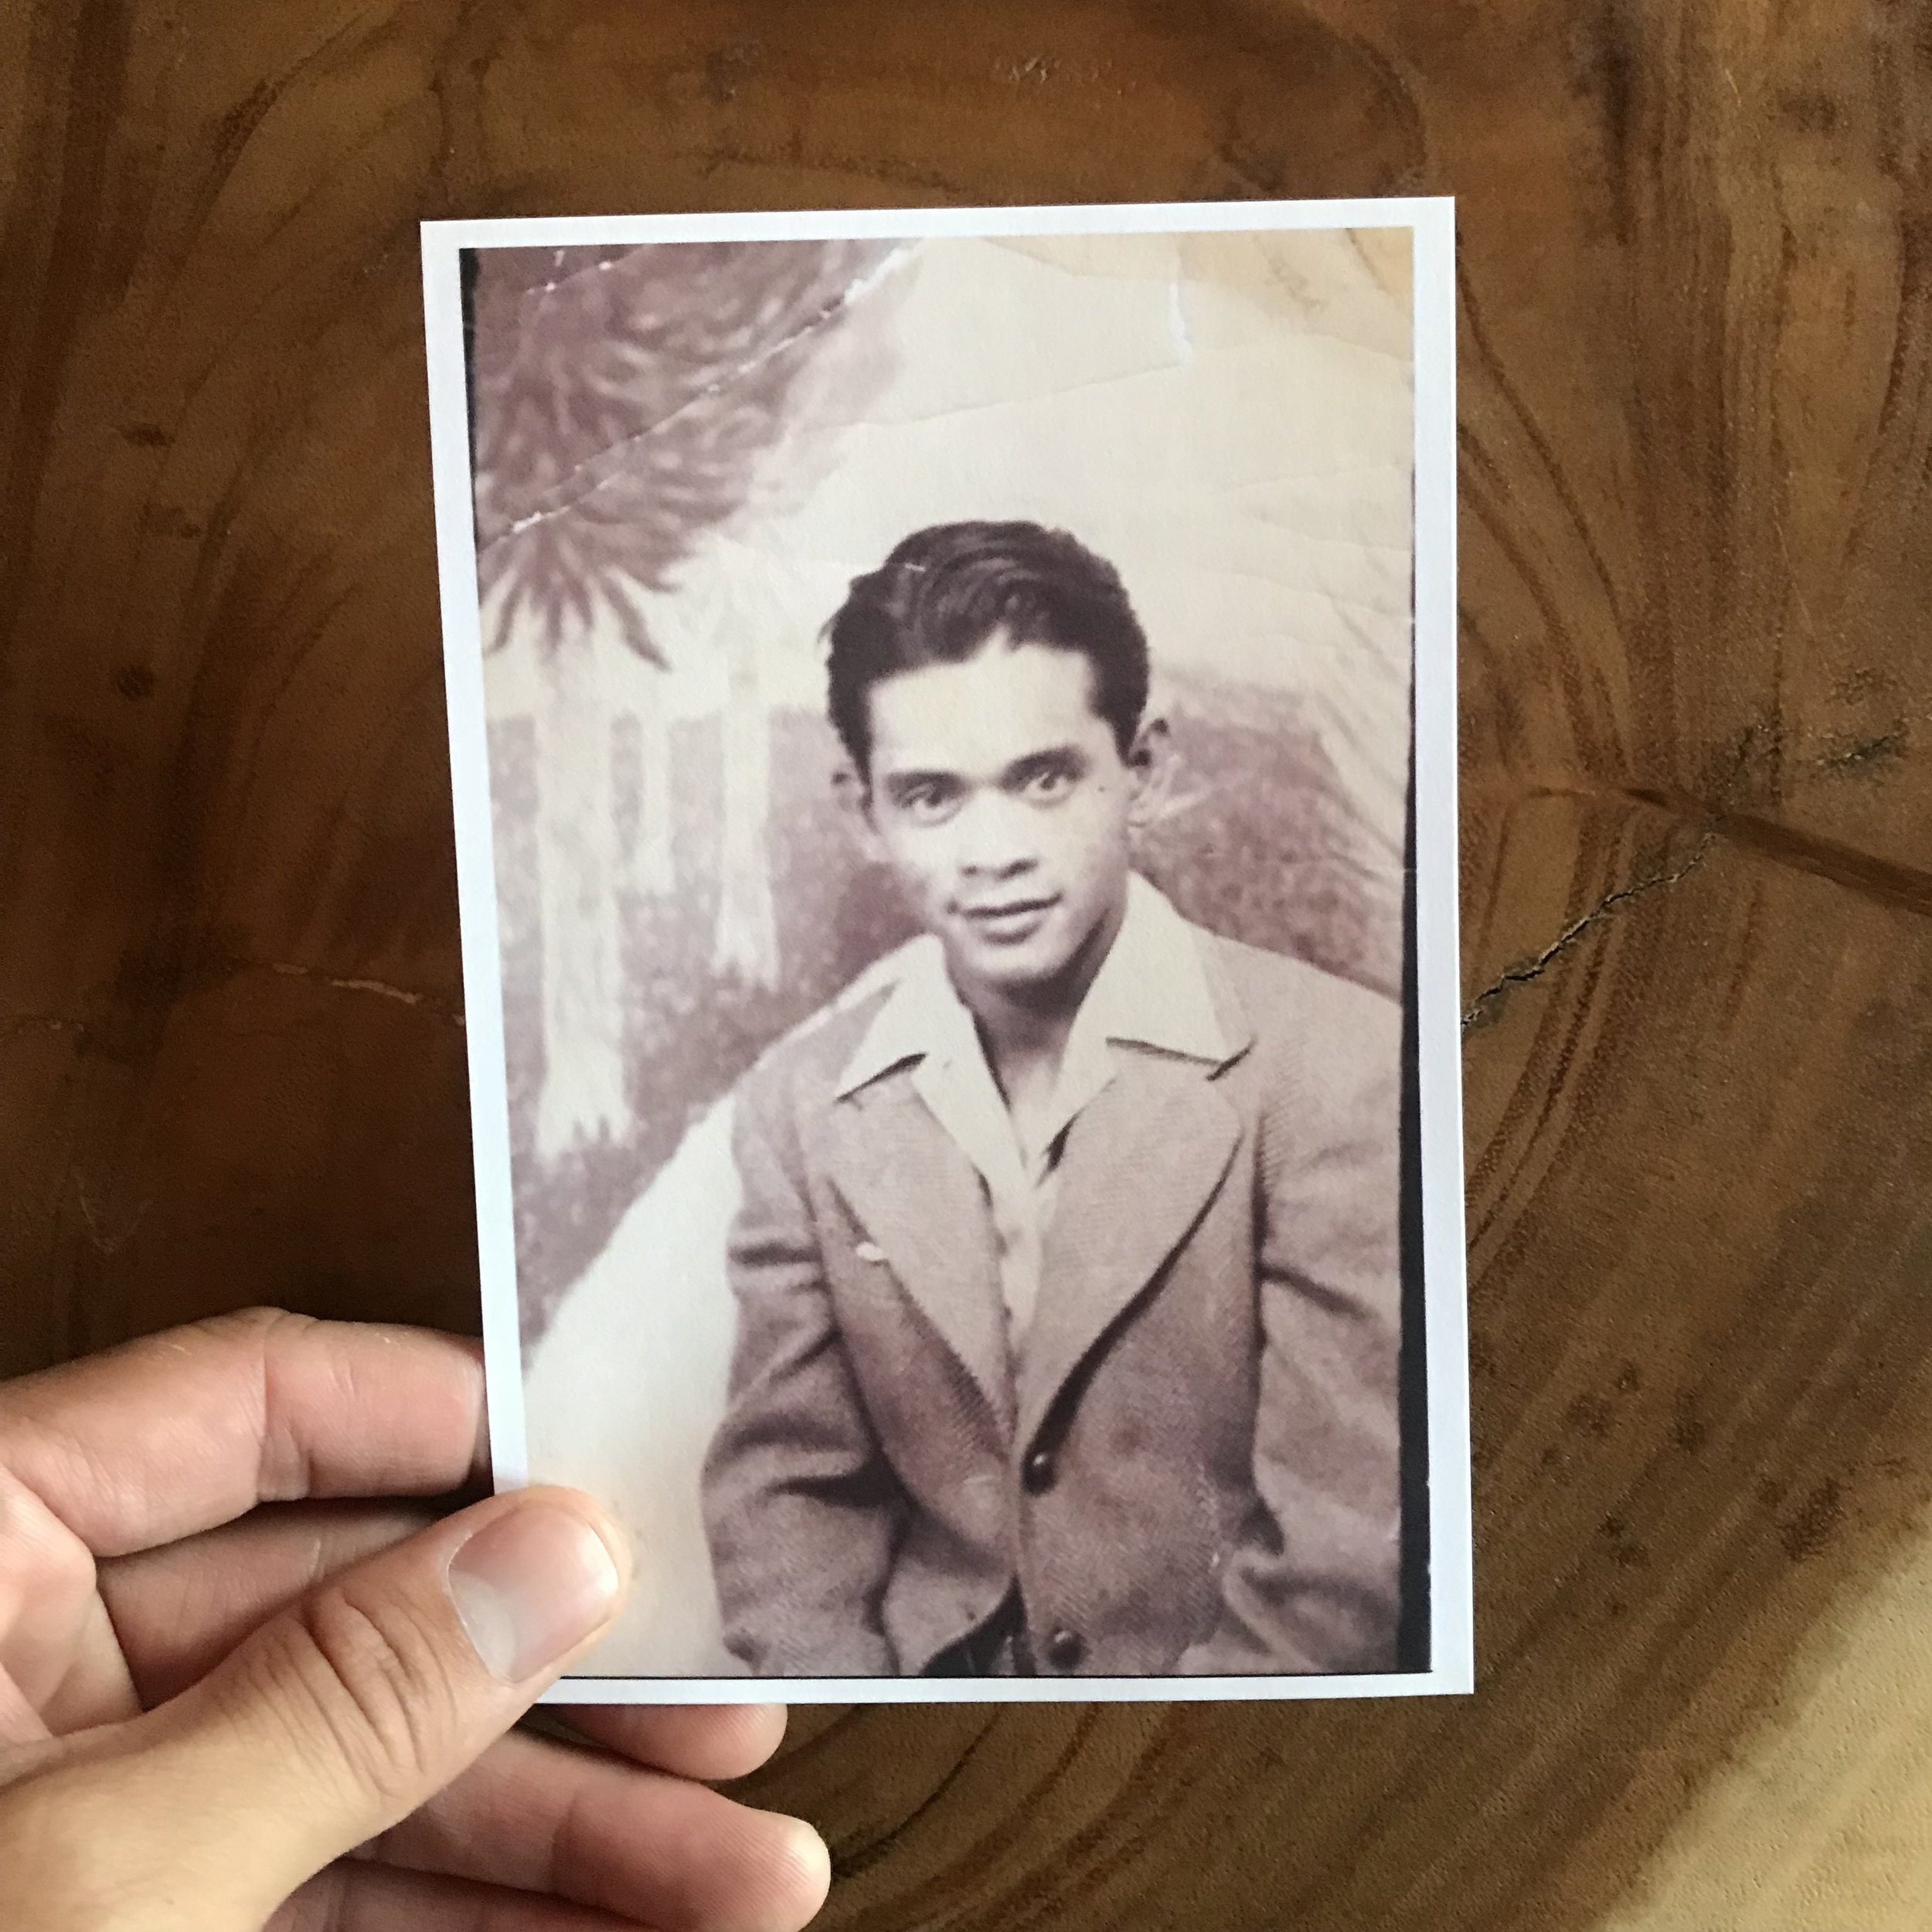 """Here's a photo of my dad, Honorio S. Carlon (1912-2008). Sometimes I look at this photo and think, """"I don't look like that..."""" then I look in the mirror and think, """"oh yeah, I do."""" It's crazy that I have a relative so close, like my fucking dad, who experienced the Great Depression, World War 2, the Civil Rights Movement, etc. He always wanted me to be a politician... I don't know why. This election season makes me think of that... I mean, my work is often political, but I don't know if what I'm doing is making the change that he wanted me to make... through policy and law... I dunno. I am a dancer and a child of my father. That's all."""